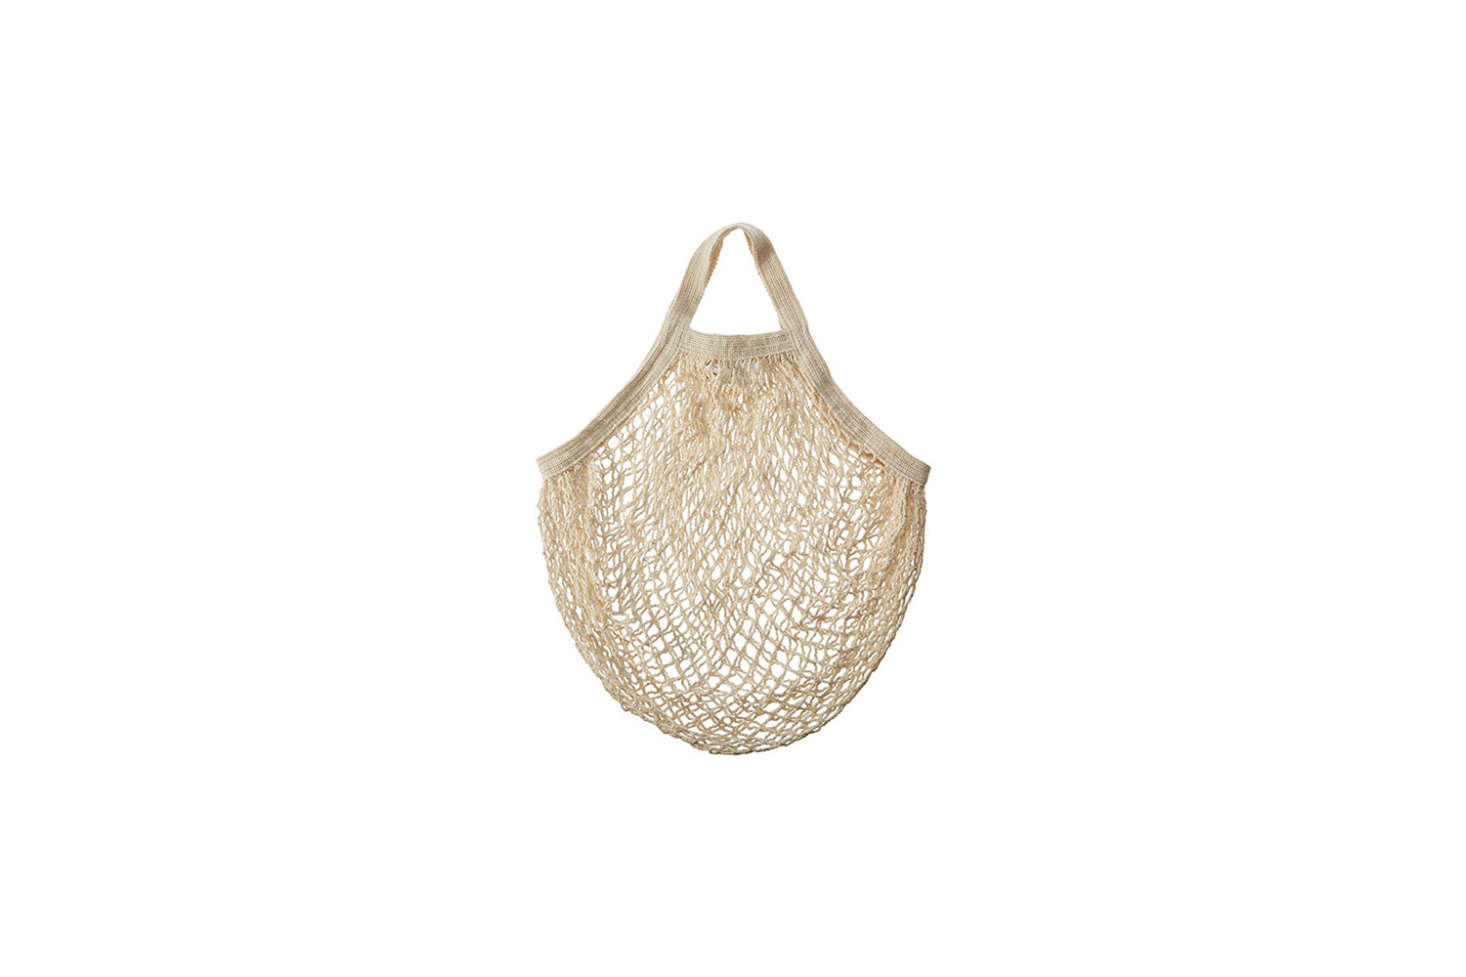 Useful for grocery shopping, storing onions and garlic (consider hanging on a kitchen peg rail), and keeping produce in the refrigerator, the Eco-Bags Products String Bag Tote in natural, organic cotton is $9.54 on Amazon.